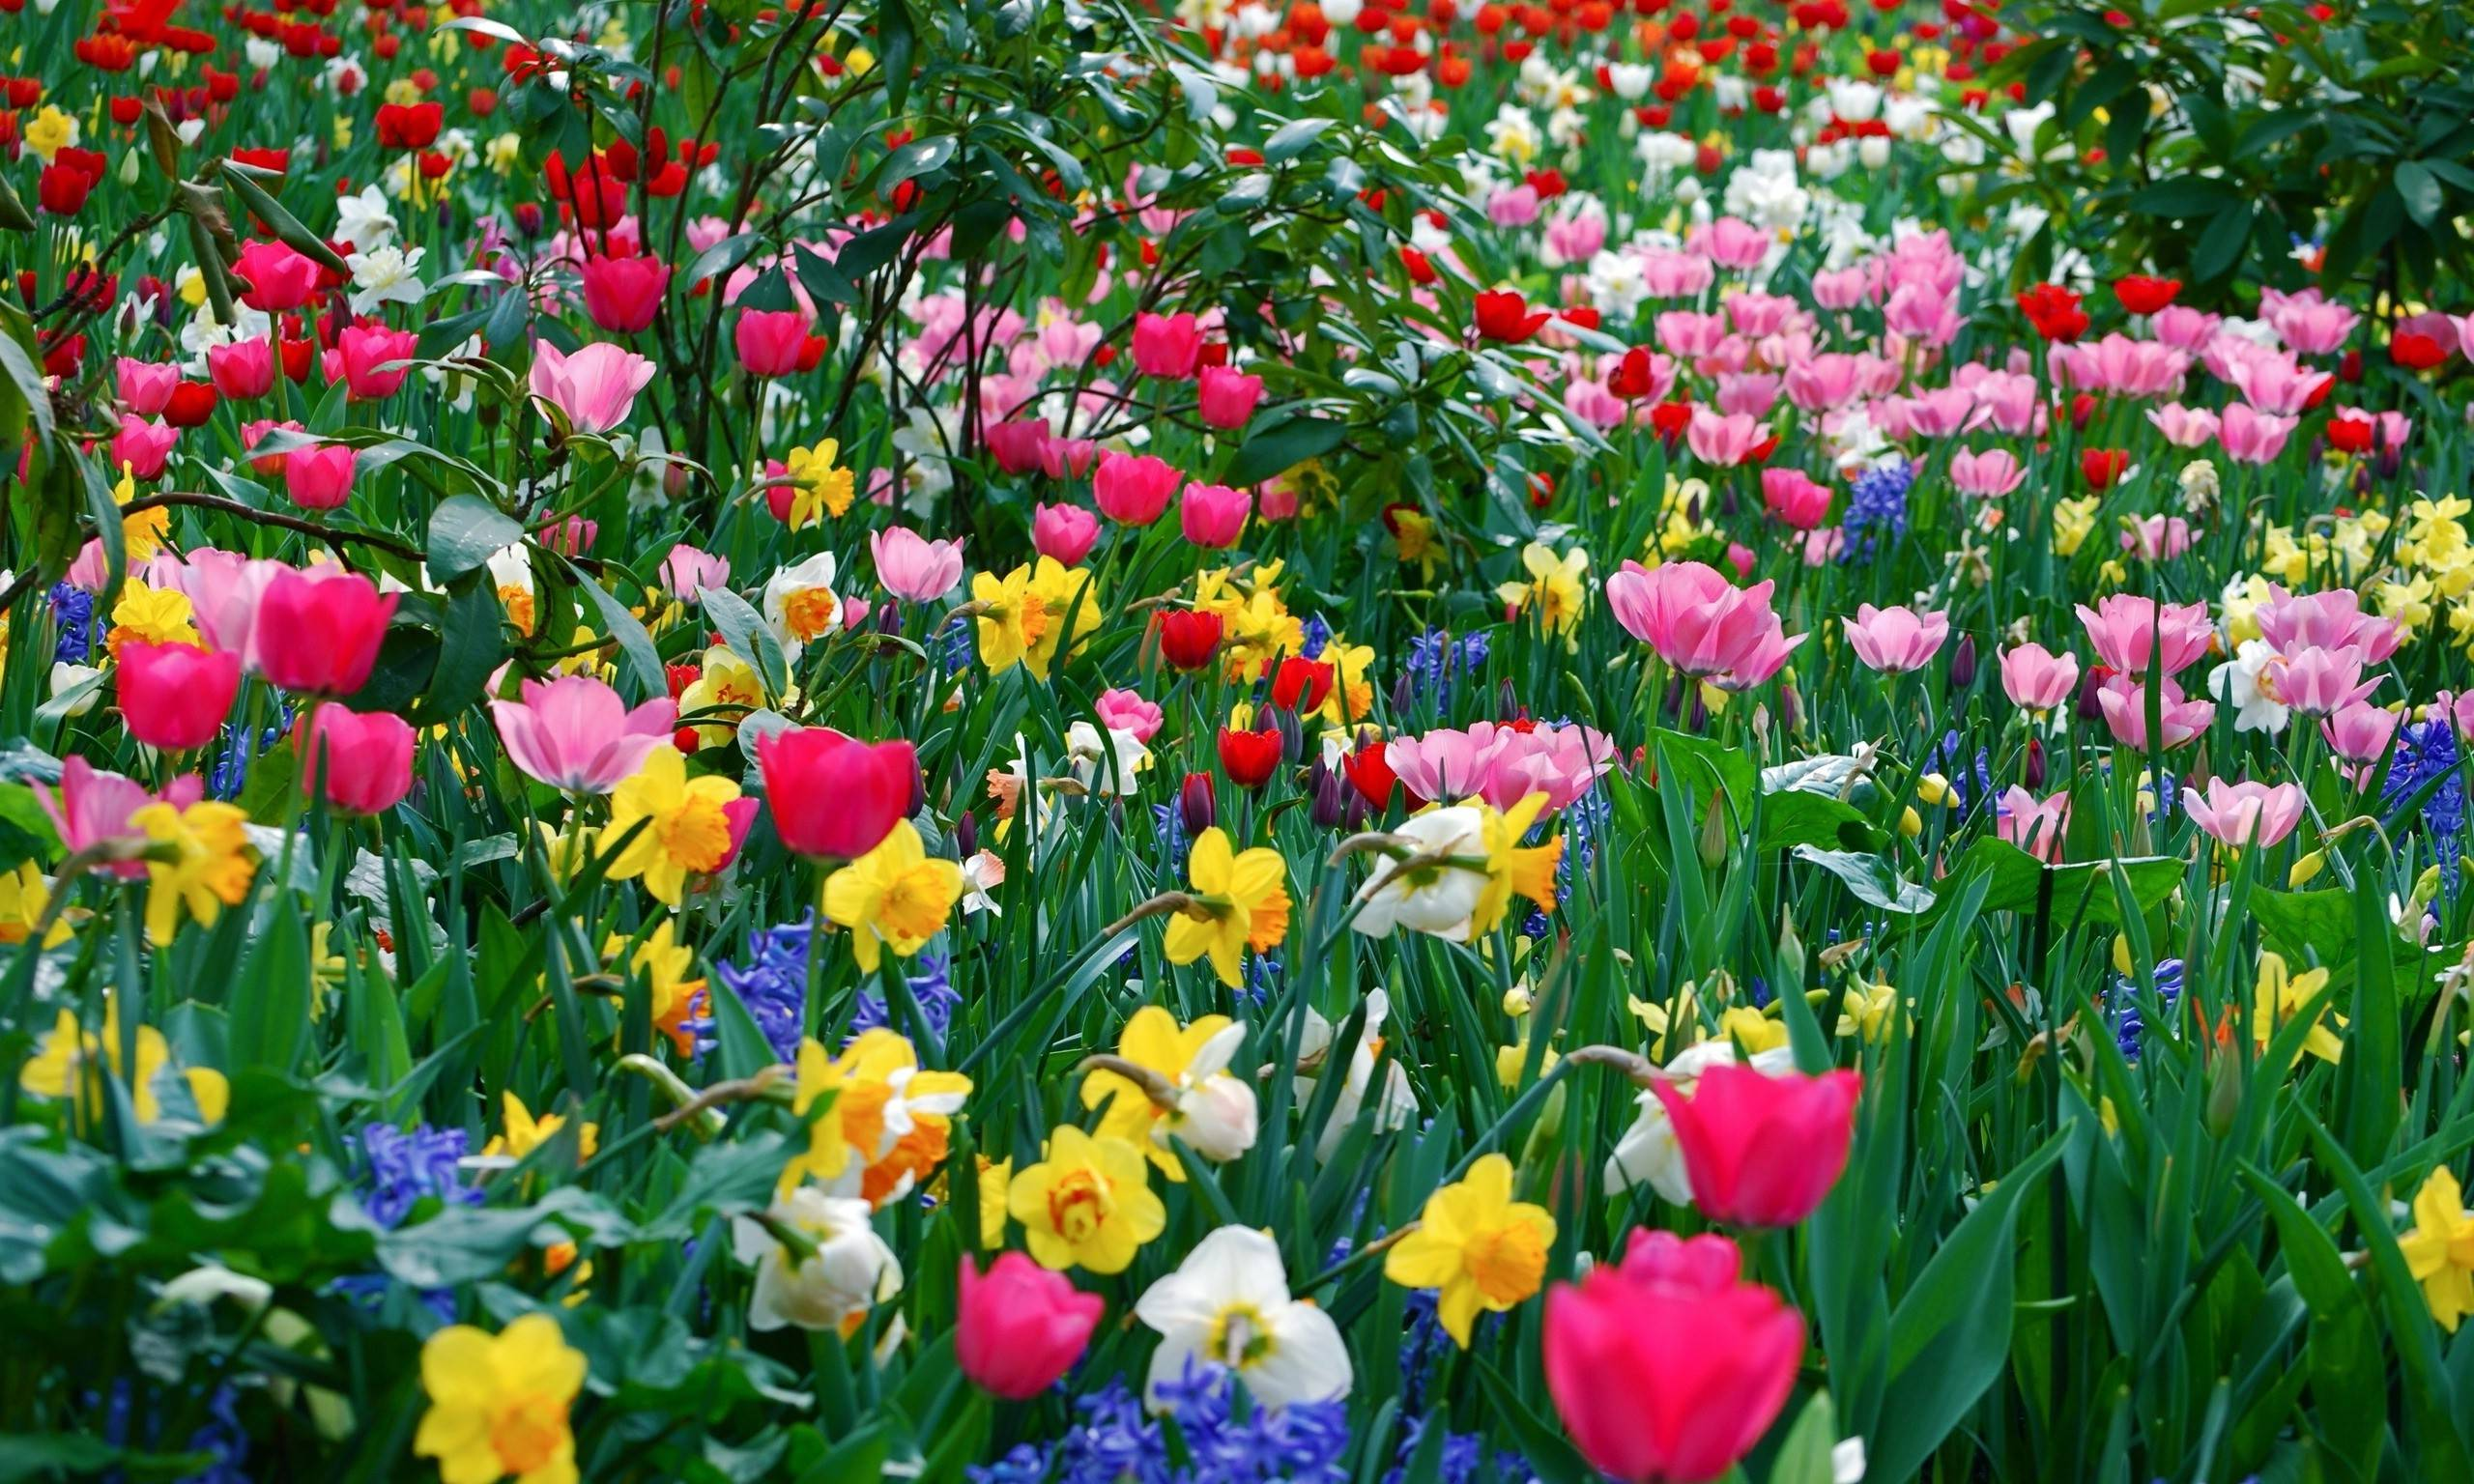 Spring Flower Wallpaper Backgrounds 2560x1536